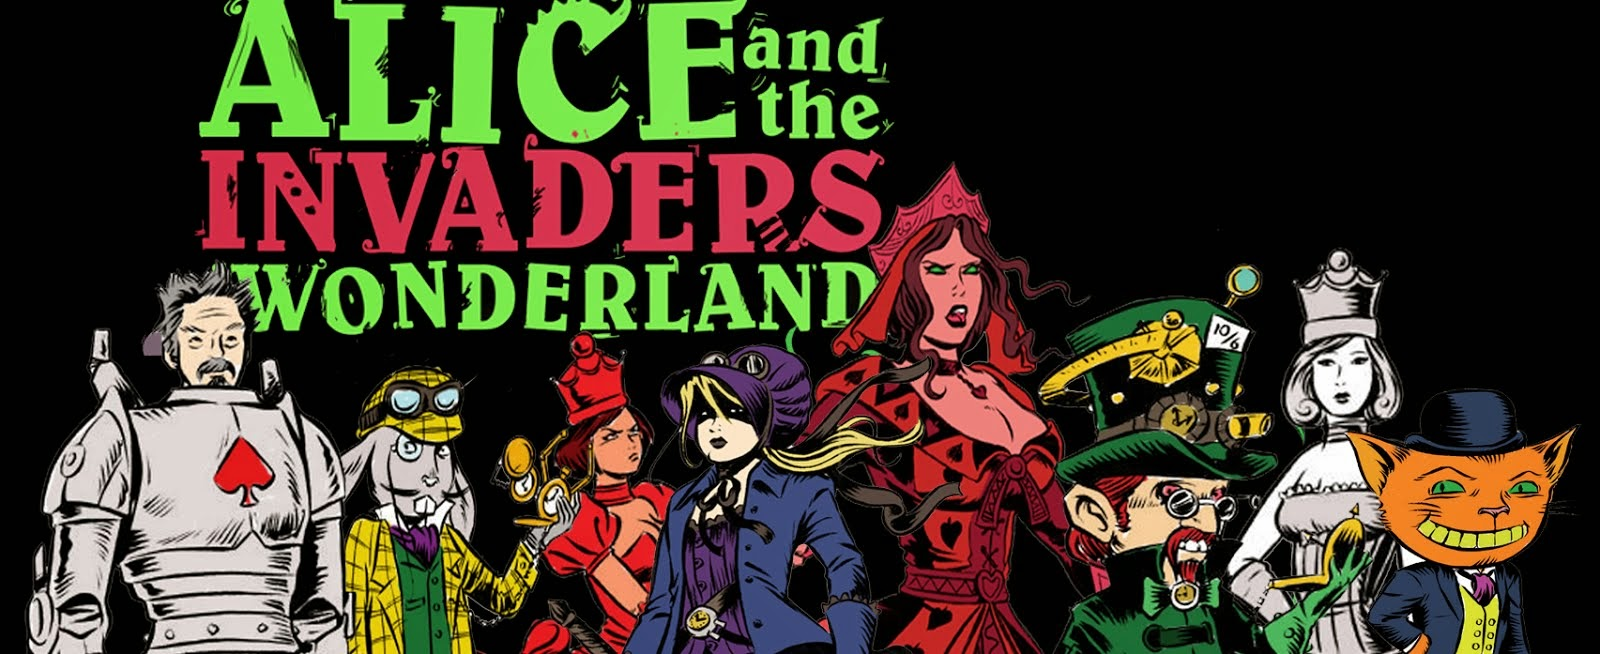 Alice and the Invaders From Wonderland